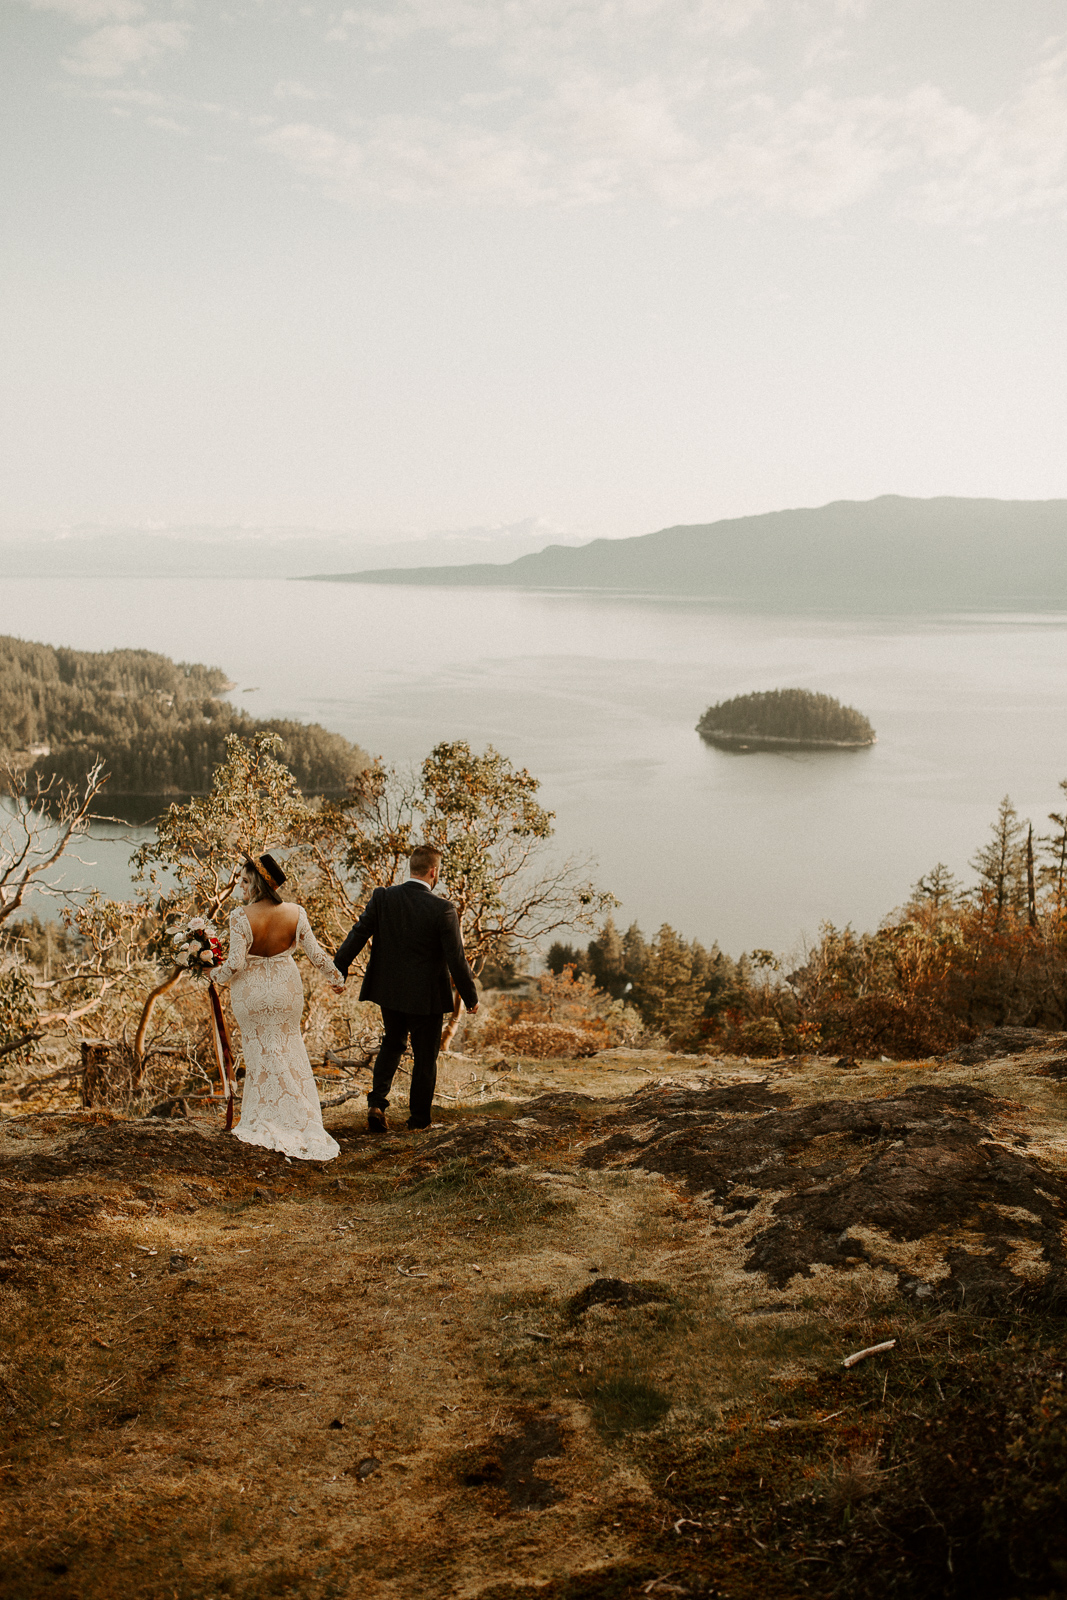 Luke Lambertson Photo_BritishColumbia_Canada_AdventurousCouple_Elopement_IMG-7924.jpg